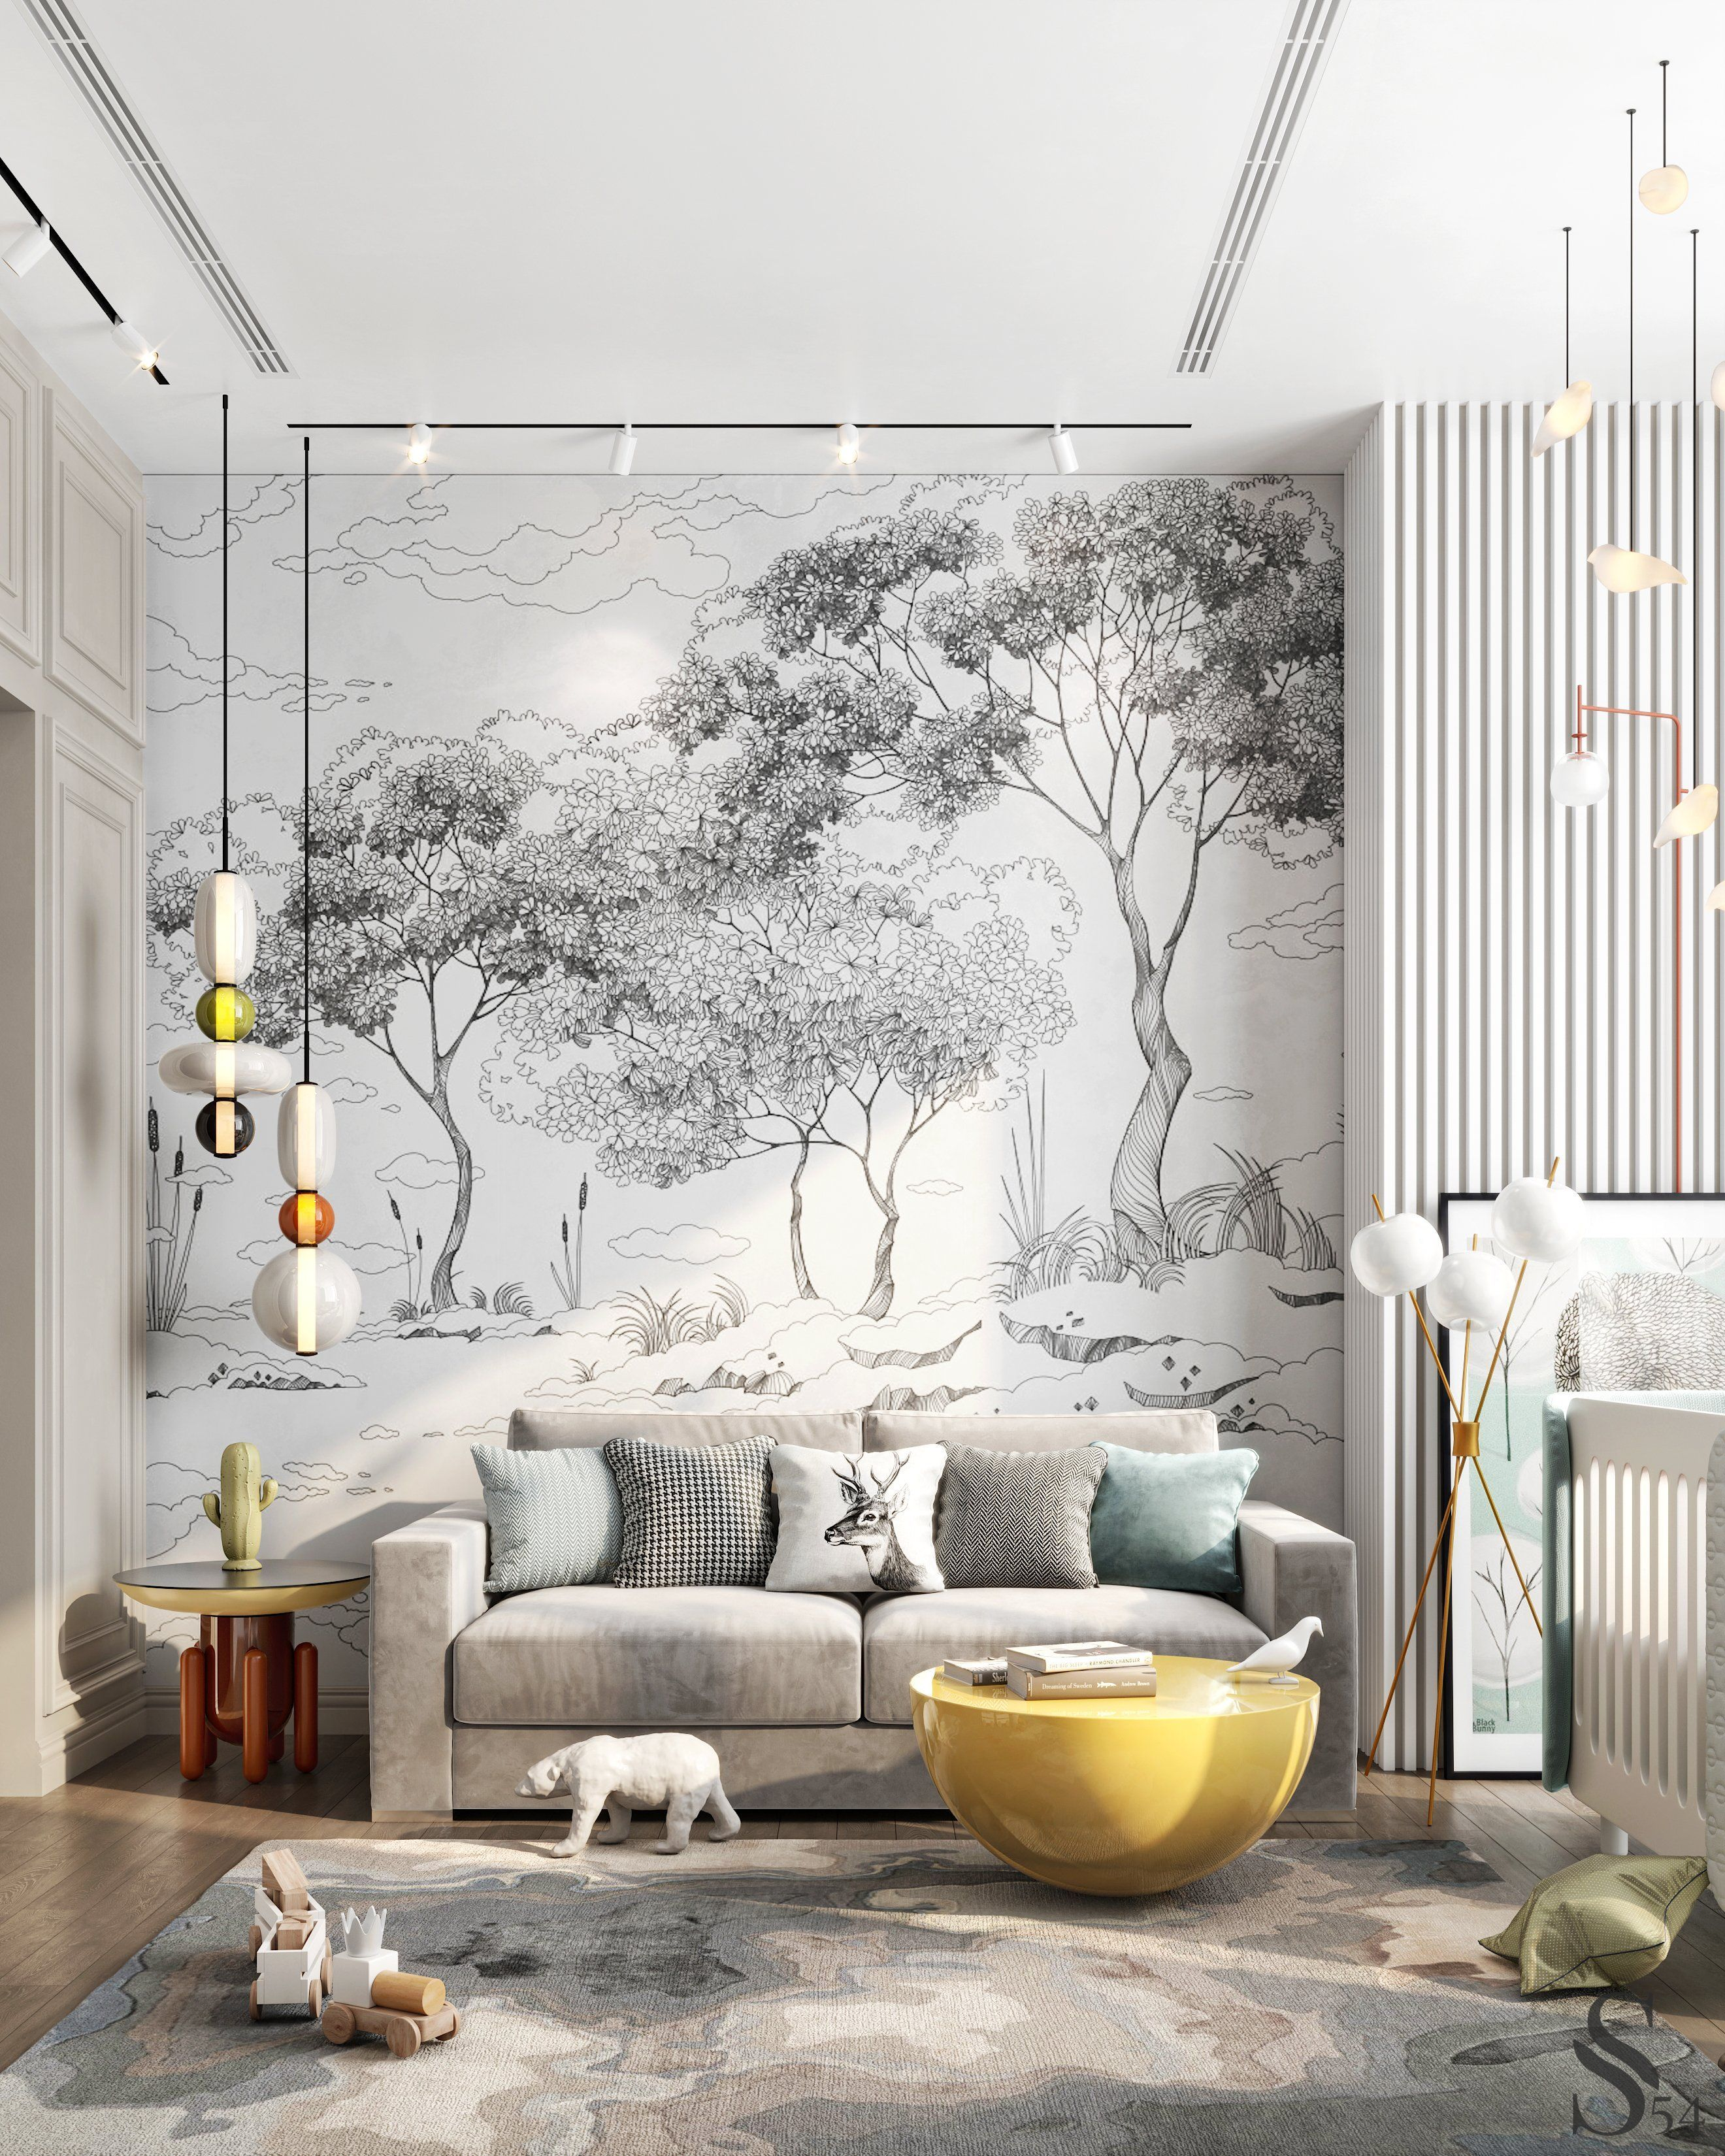 Unusual prints on the wallpaper, interesting chandeliers and lamps